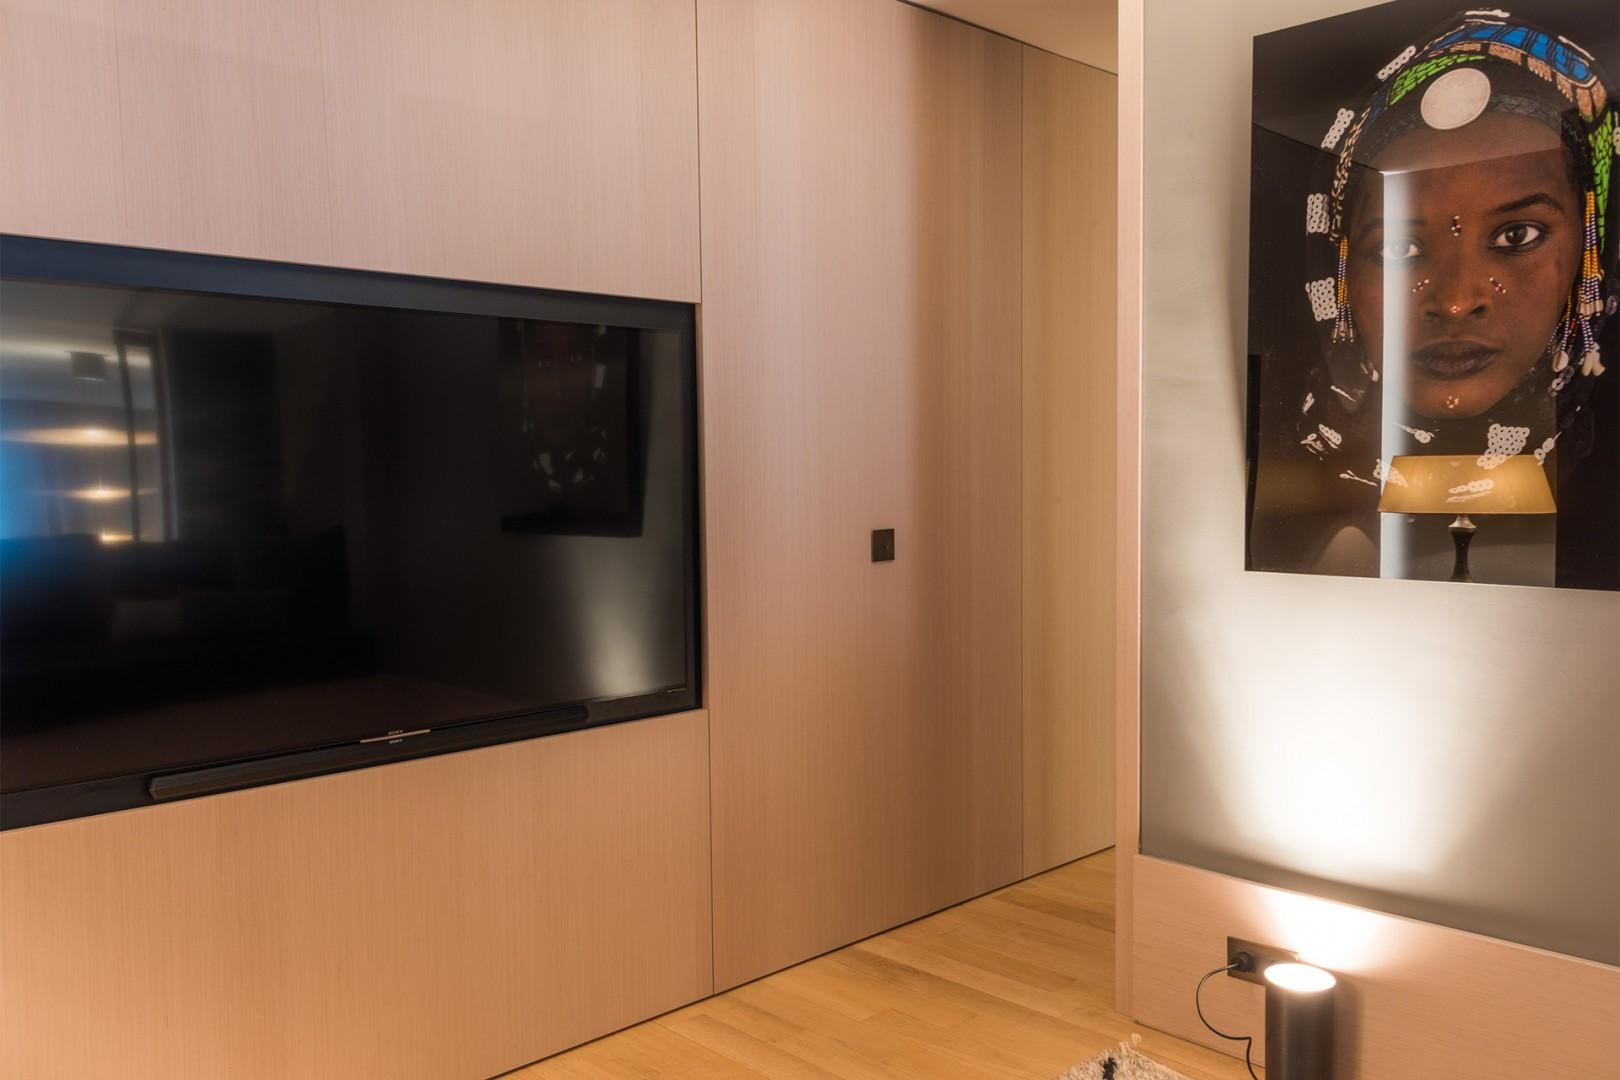 There is also a separate TV room.